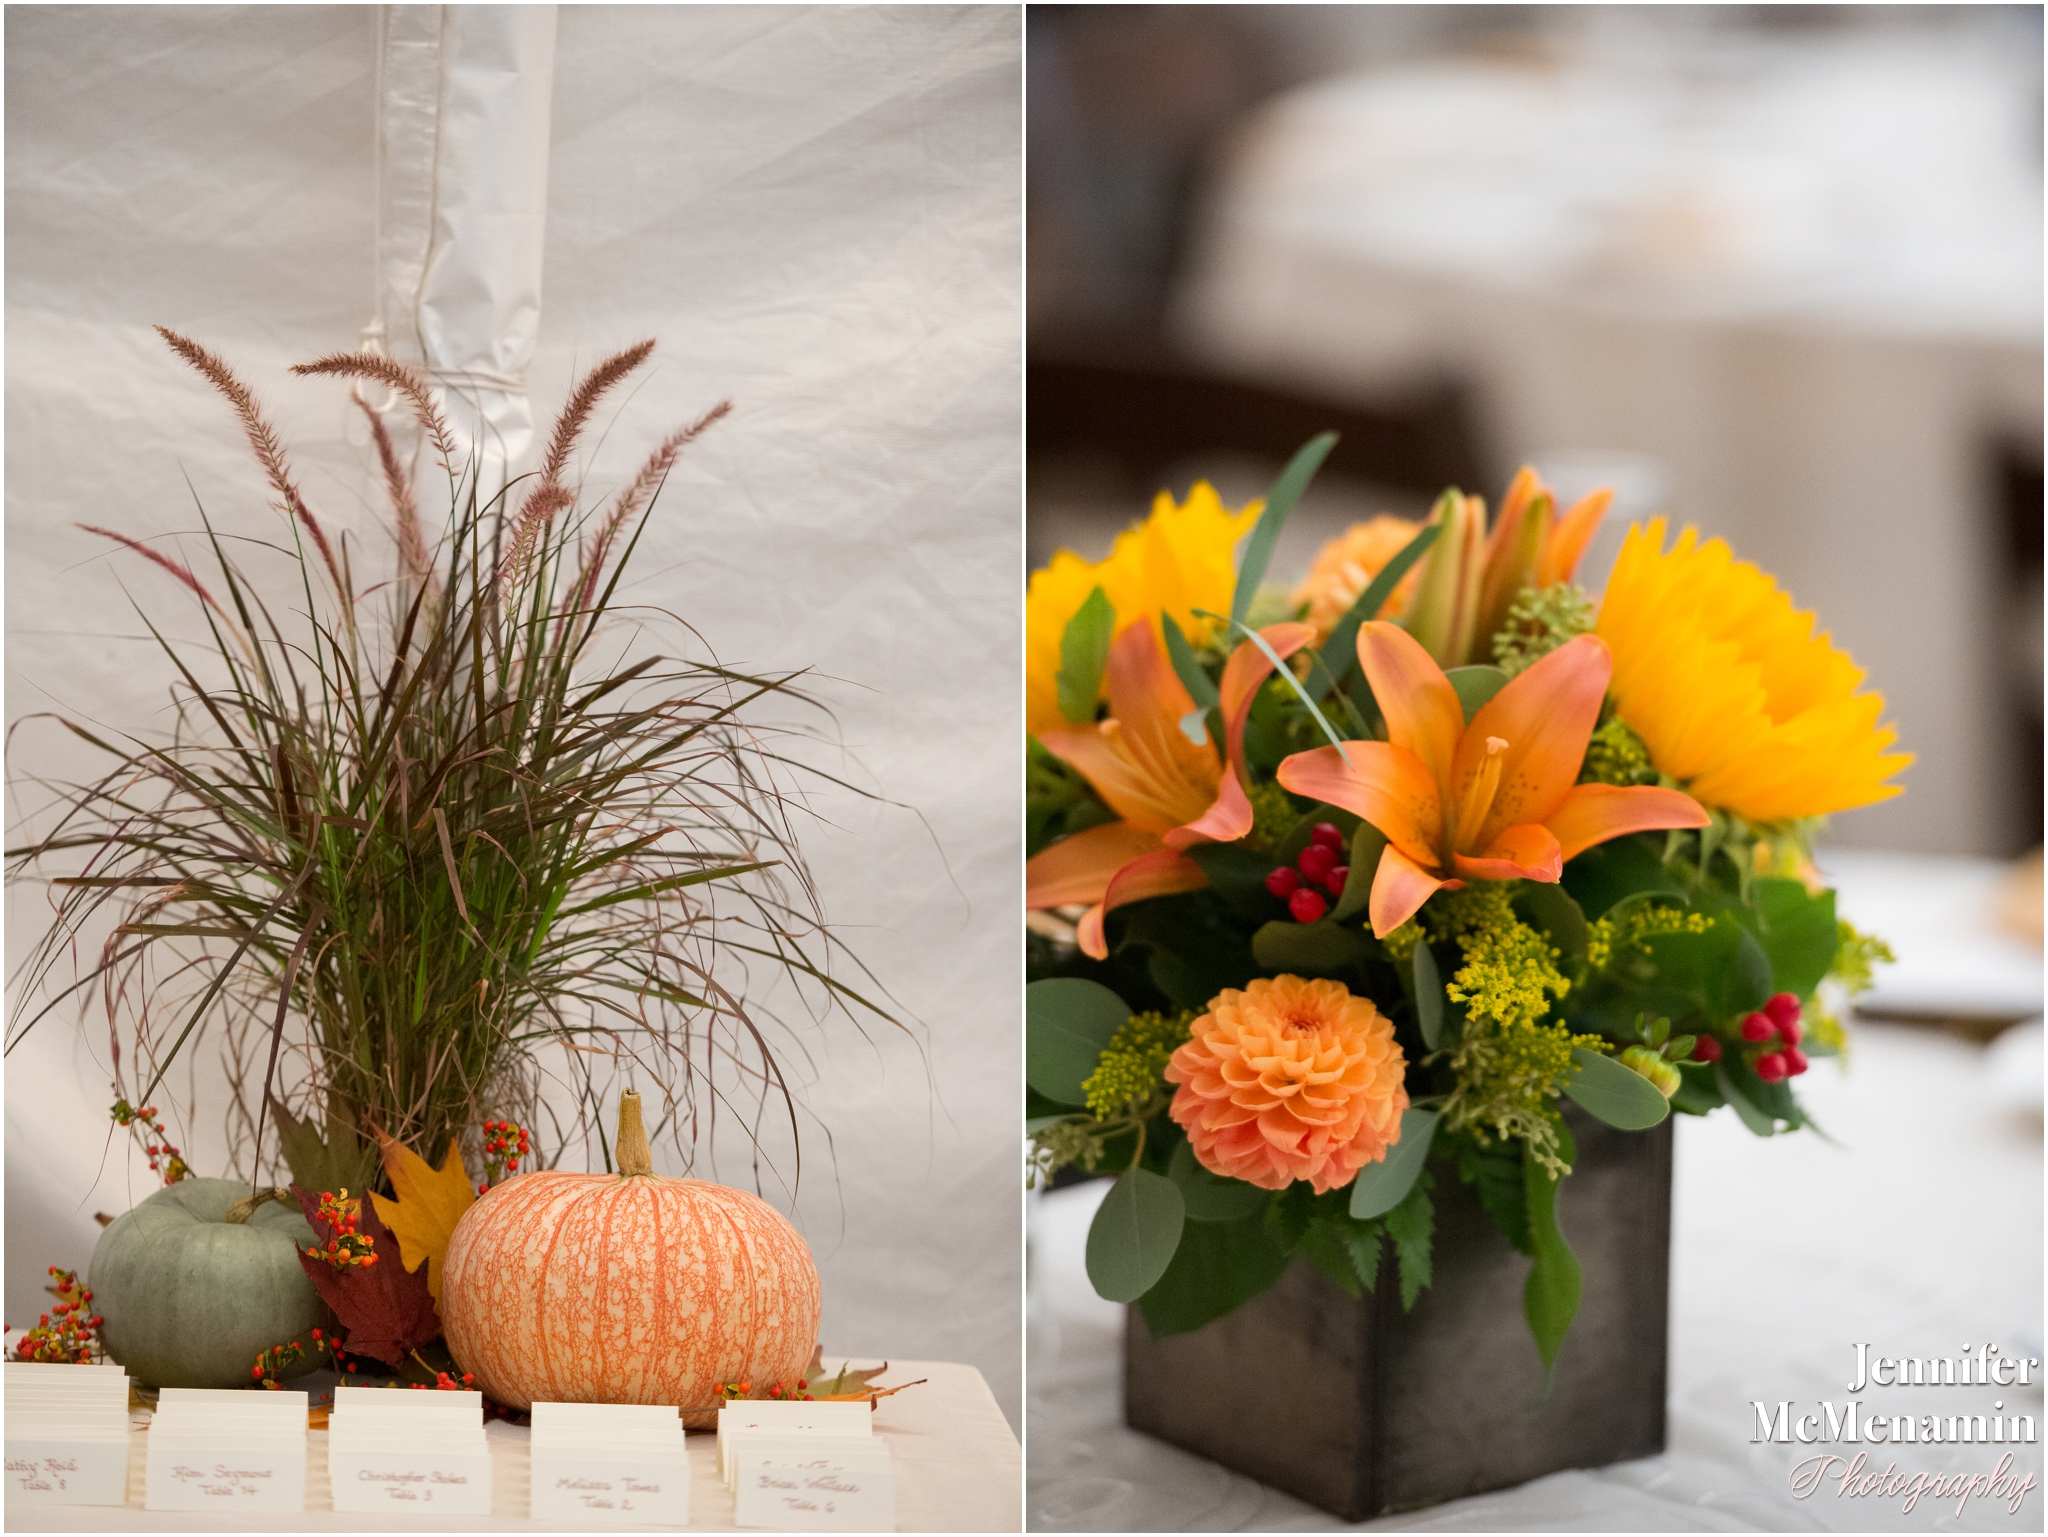 069-HenningMiller_02500-0517_JenniferMcMenaminPhotography_Evergreen-Museum-And-Carriage-House_Evergreen-wedding_Baltimore-wedding-photographer_Baltimore-wedding-photography